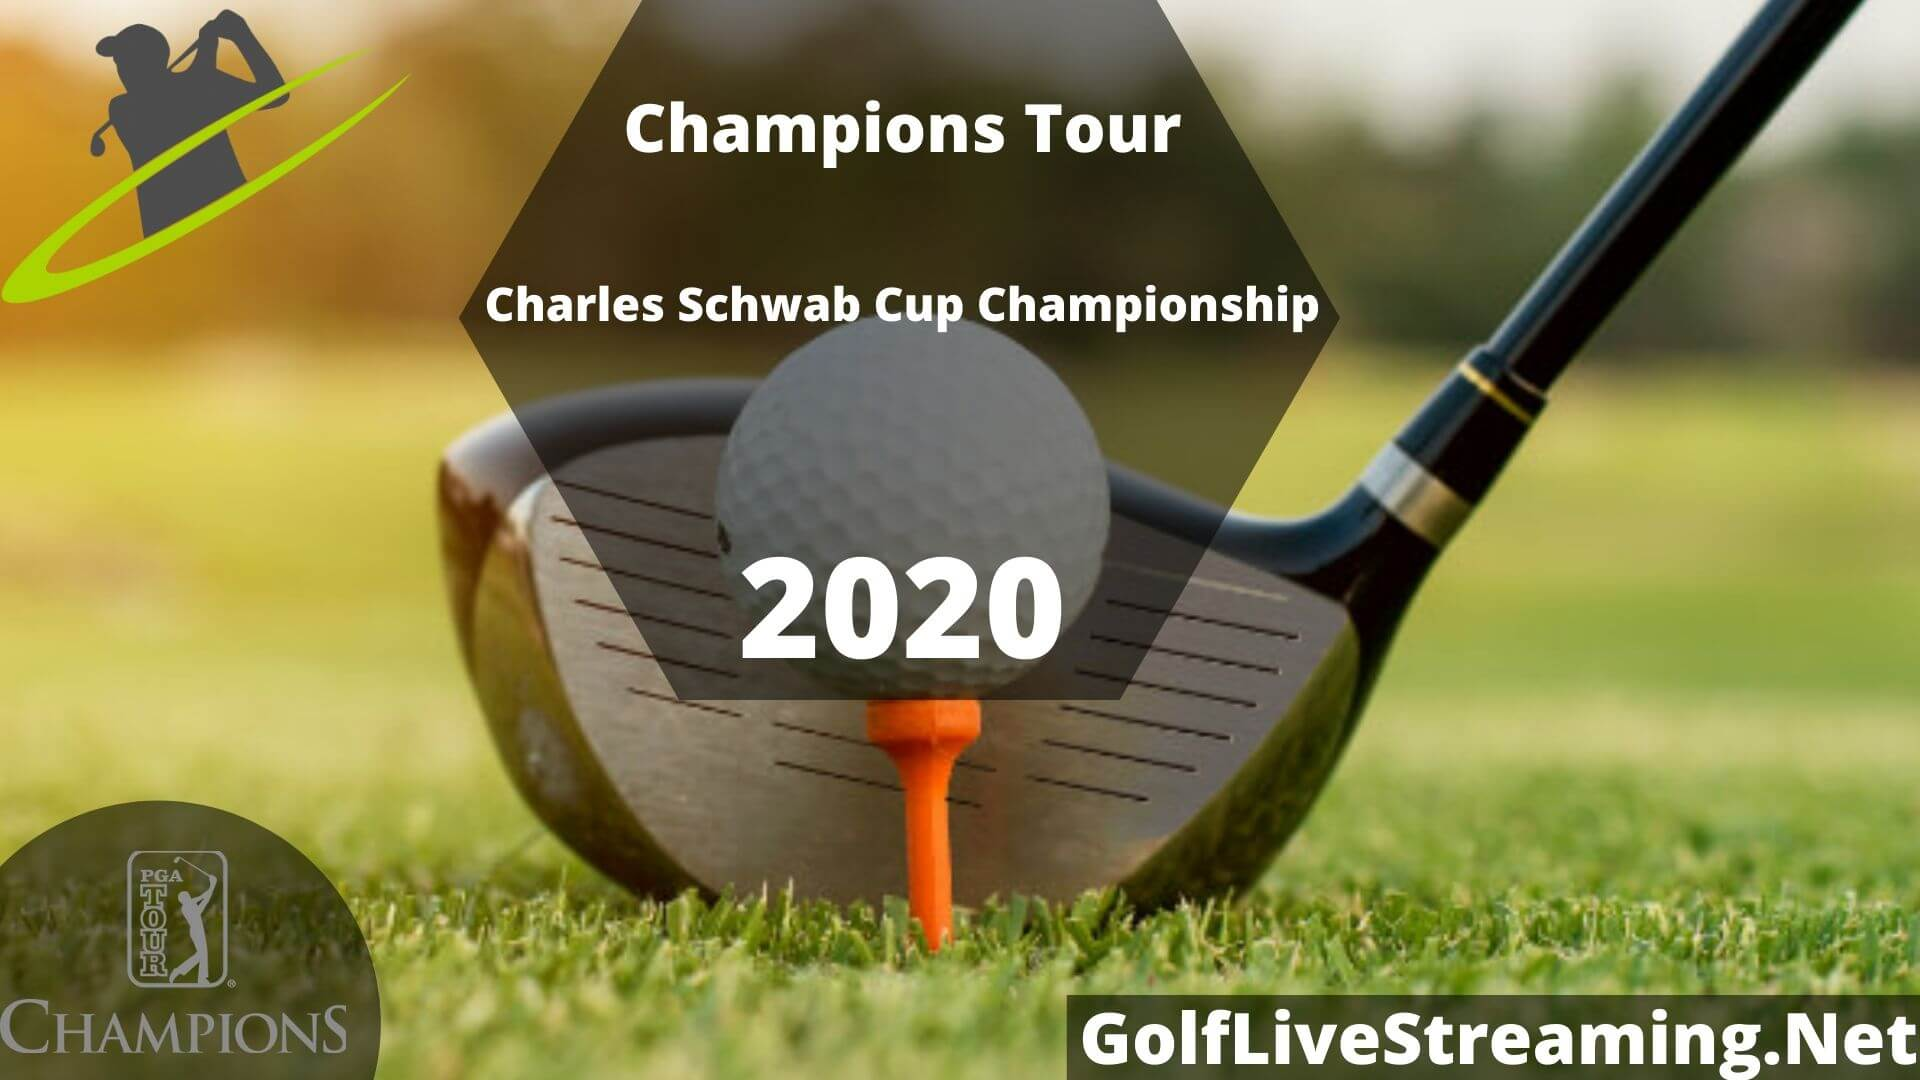 Charles Schwab Cup Championship Live Stream 2020 | Champions Tour Round 2